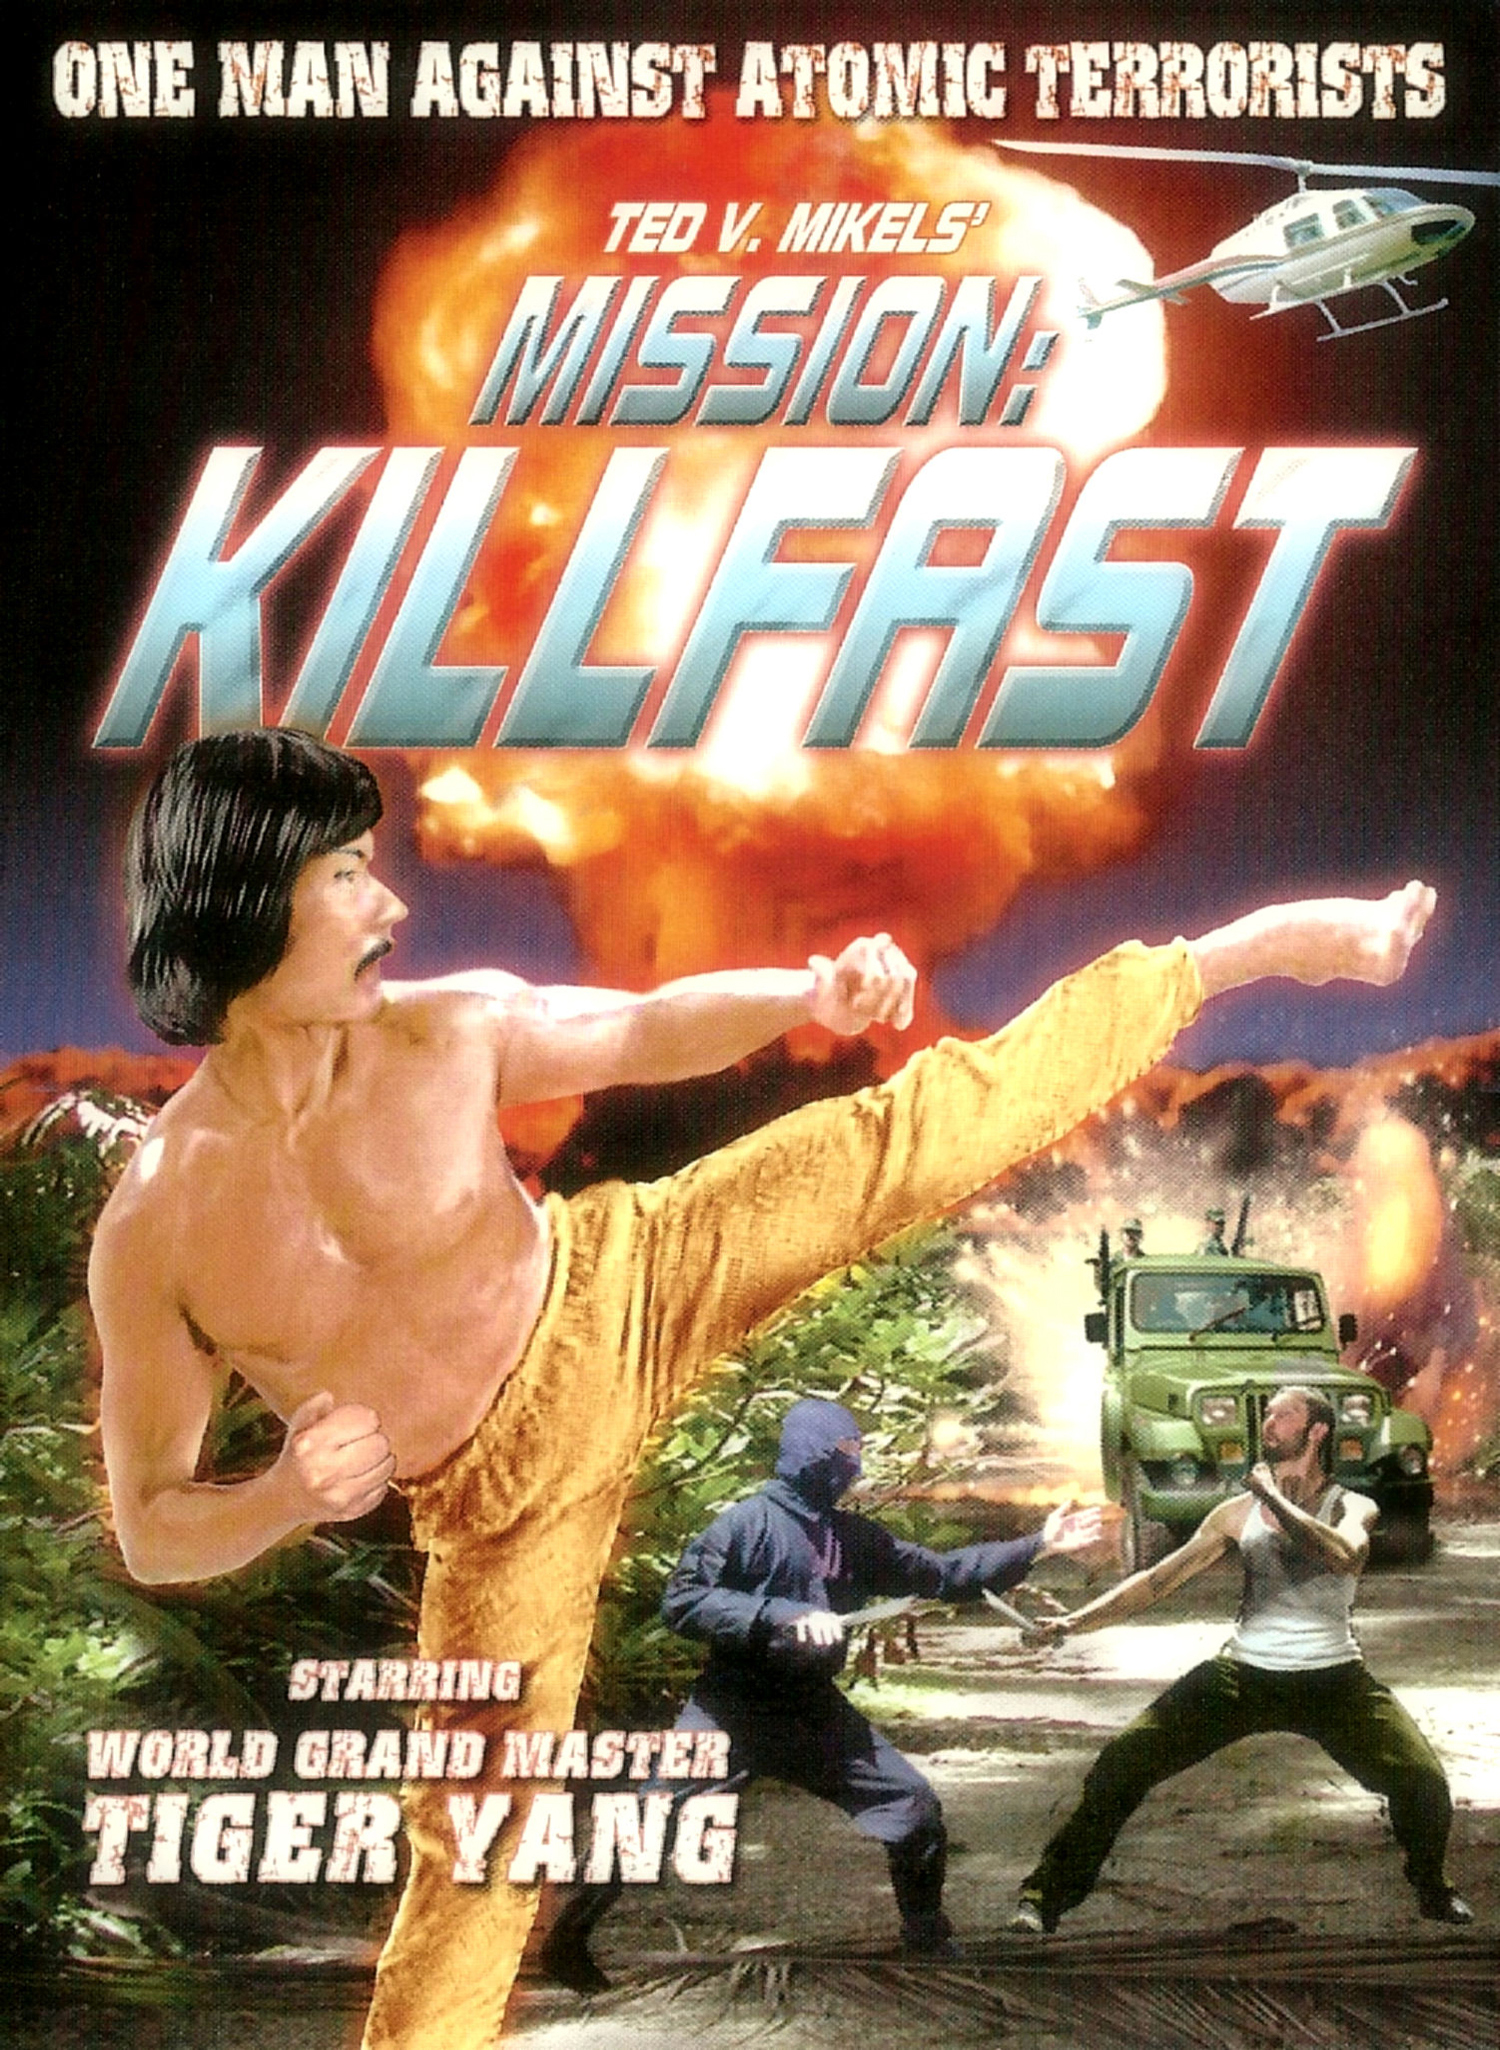 Mission Killfast Sgl Entertainment Releasing